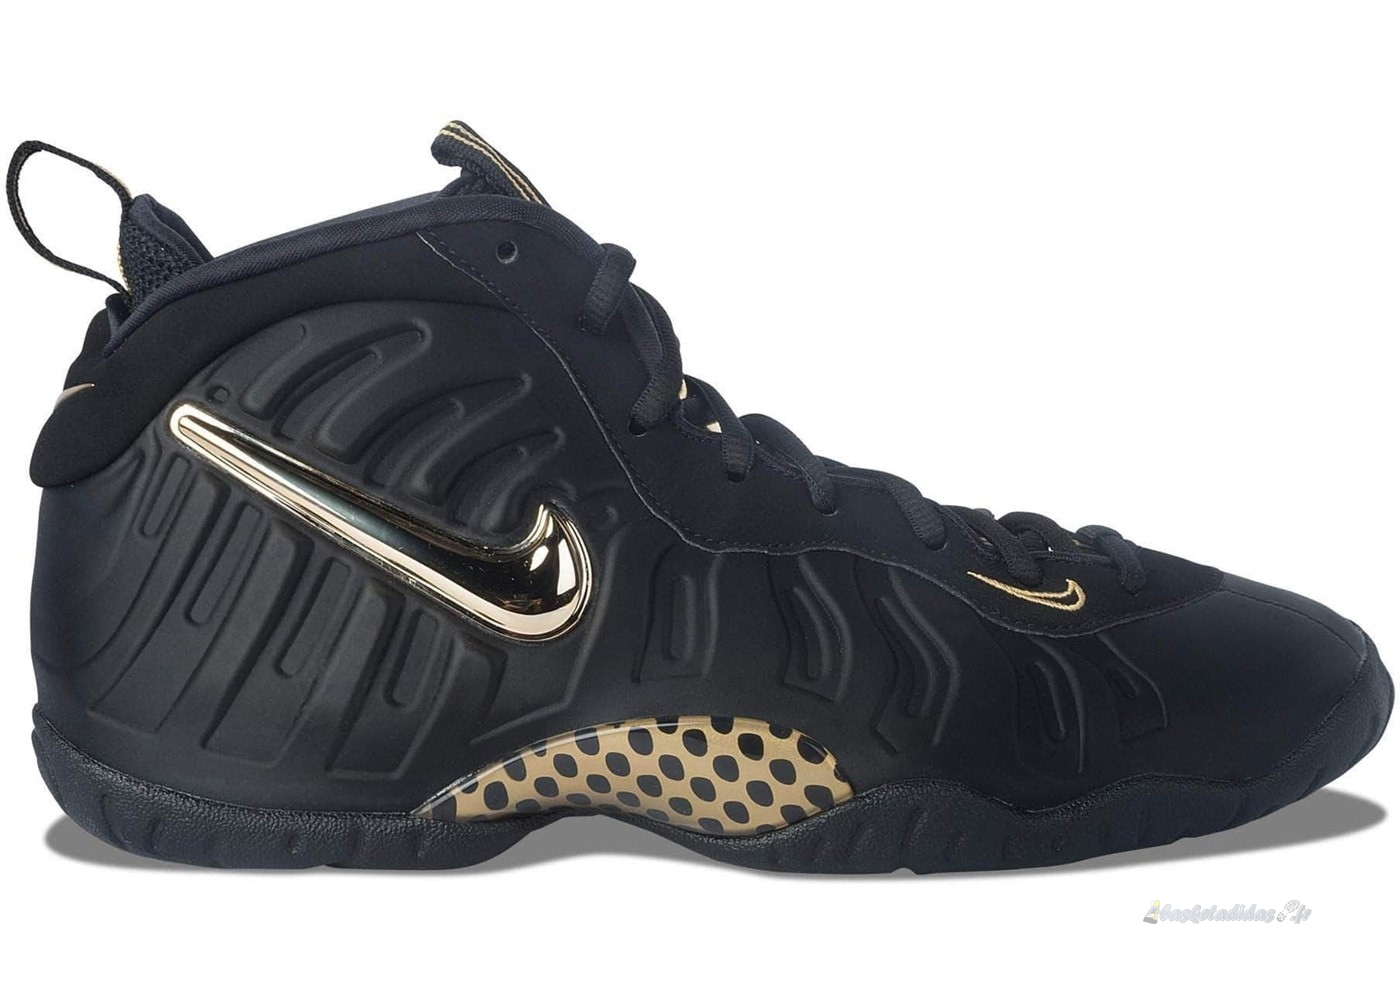 Chaussure de Basket Nike Air Foamposite Pro (Gs) Noir Or (644792-010)